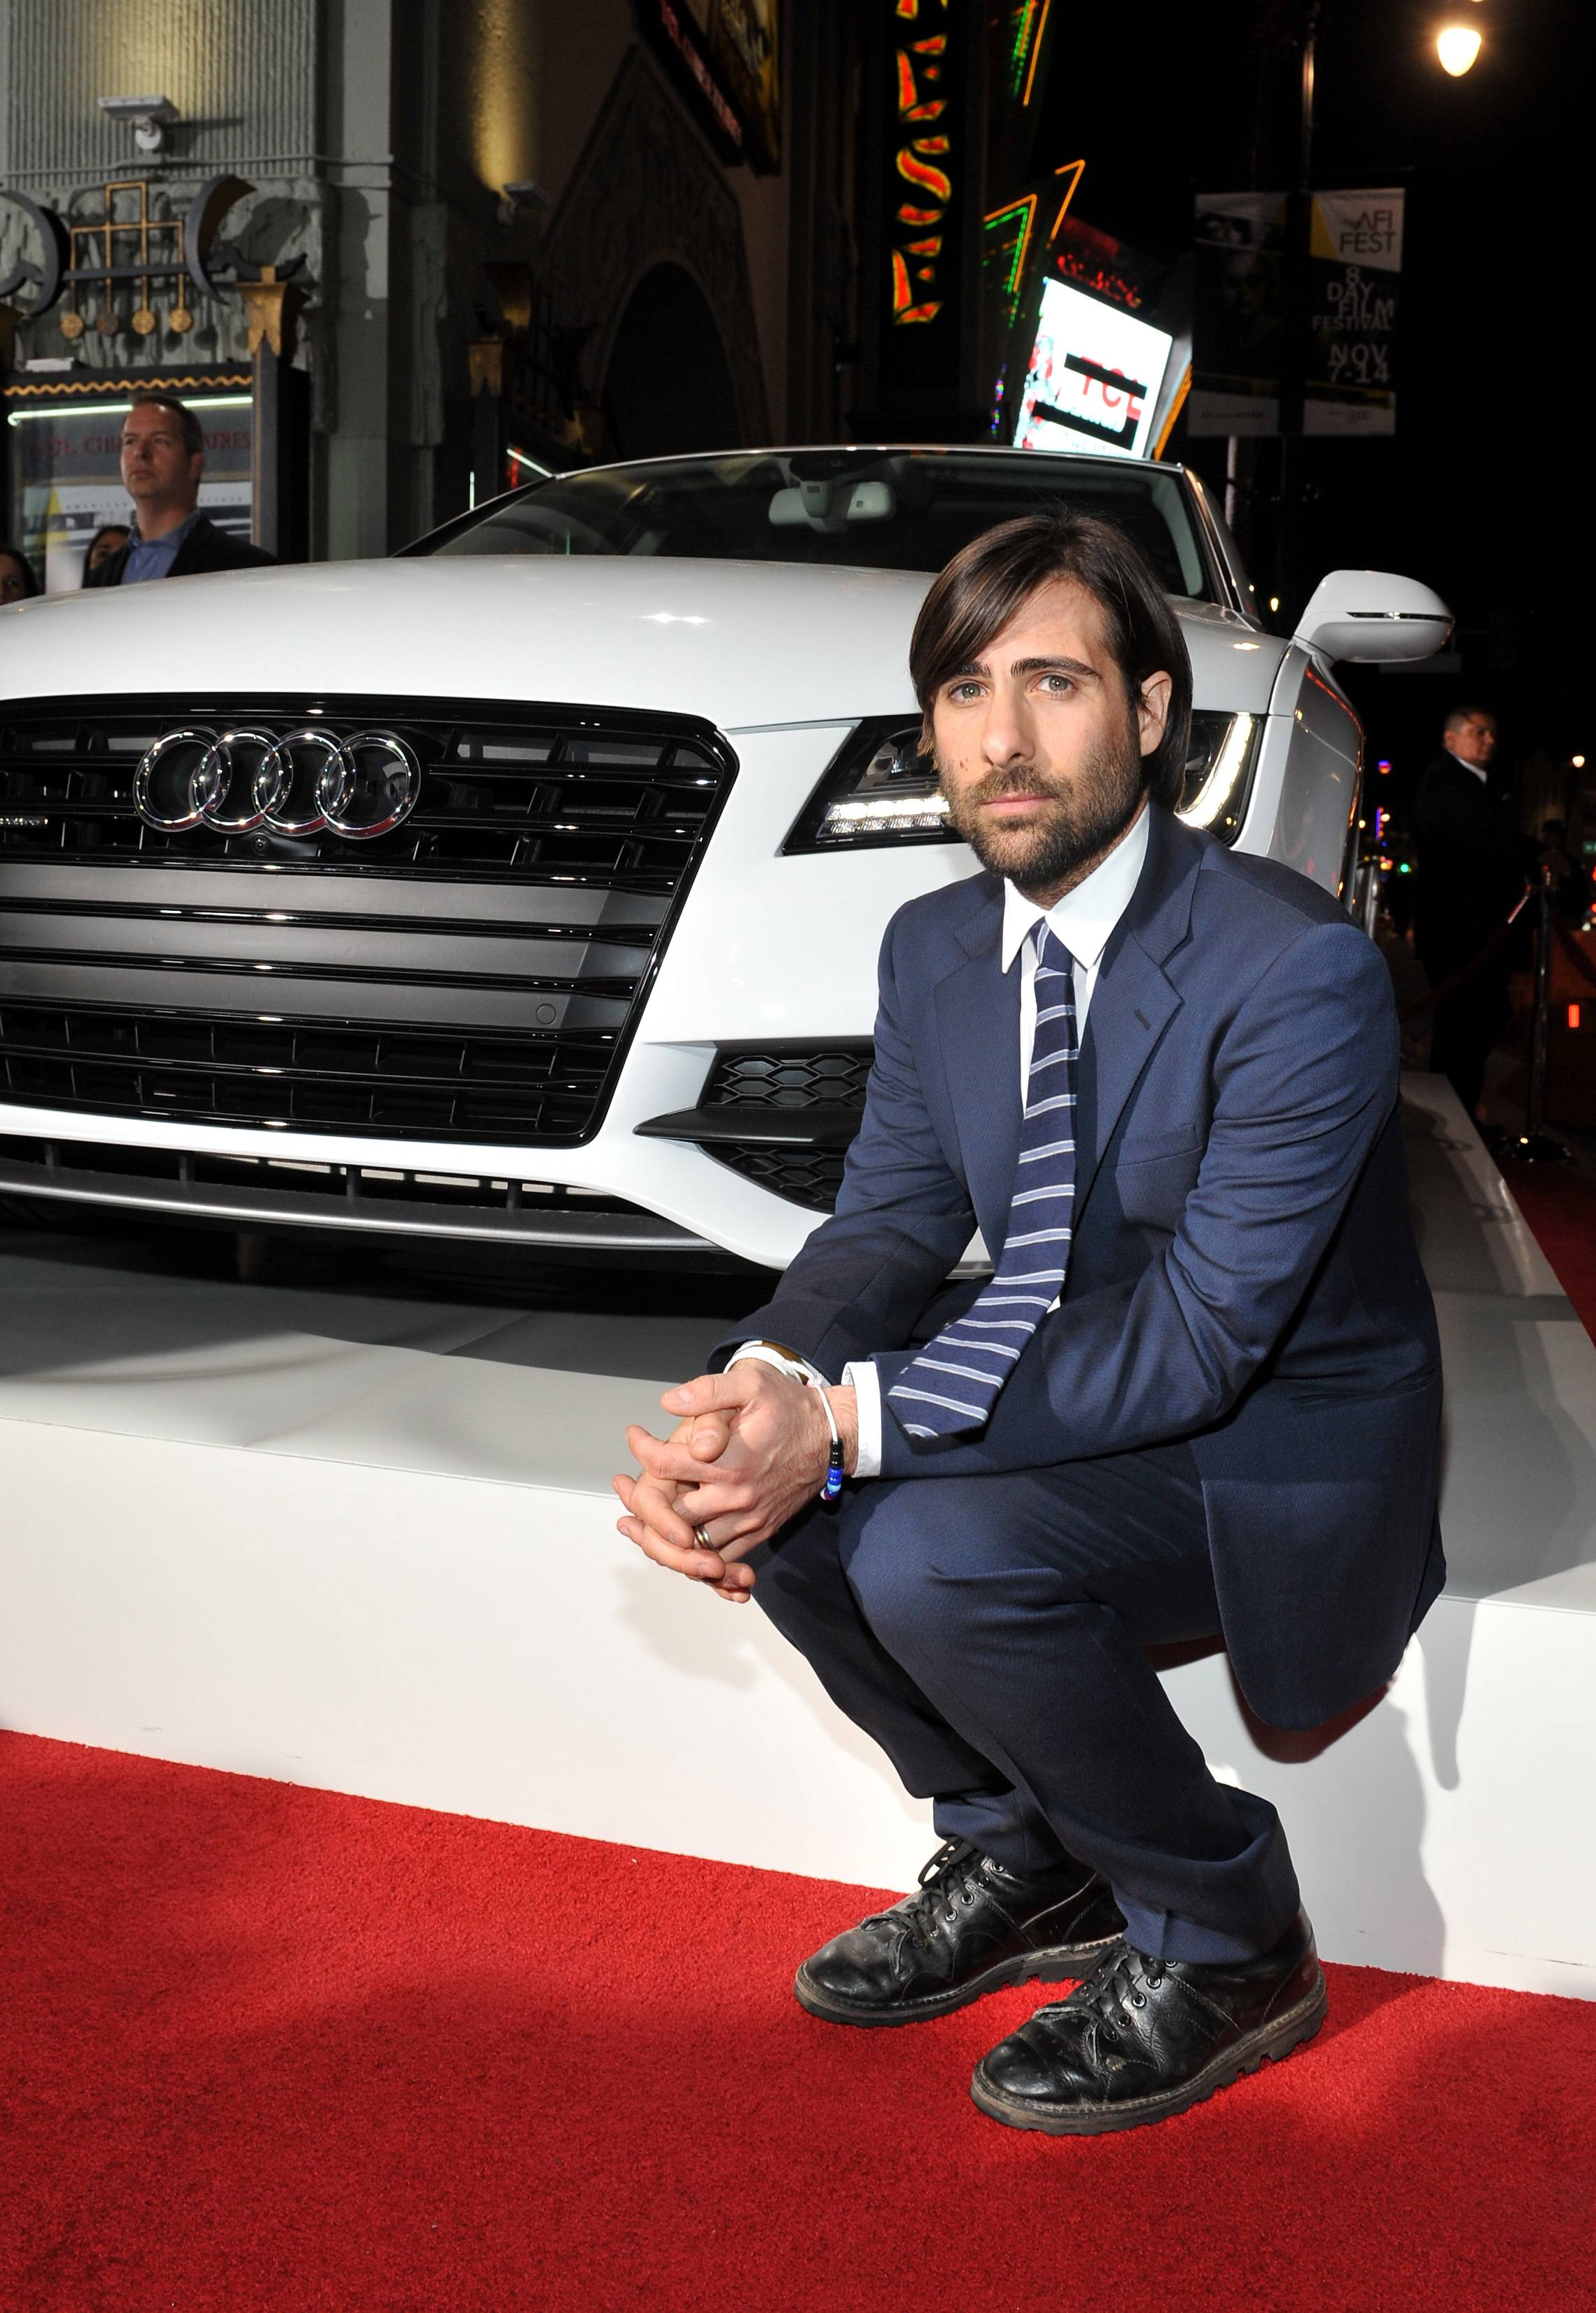 Audi Arrivals At AFI FEST 2013 Presented By Audi - Disney's